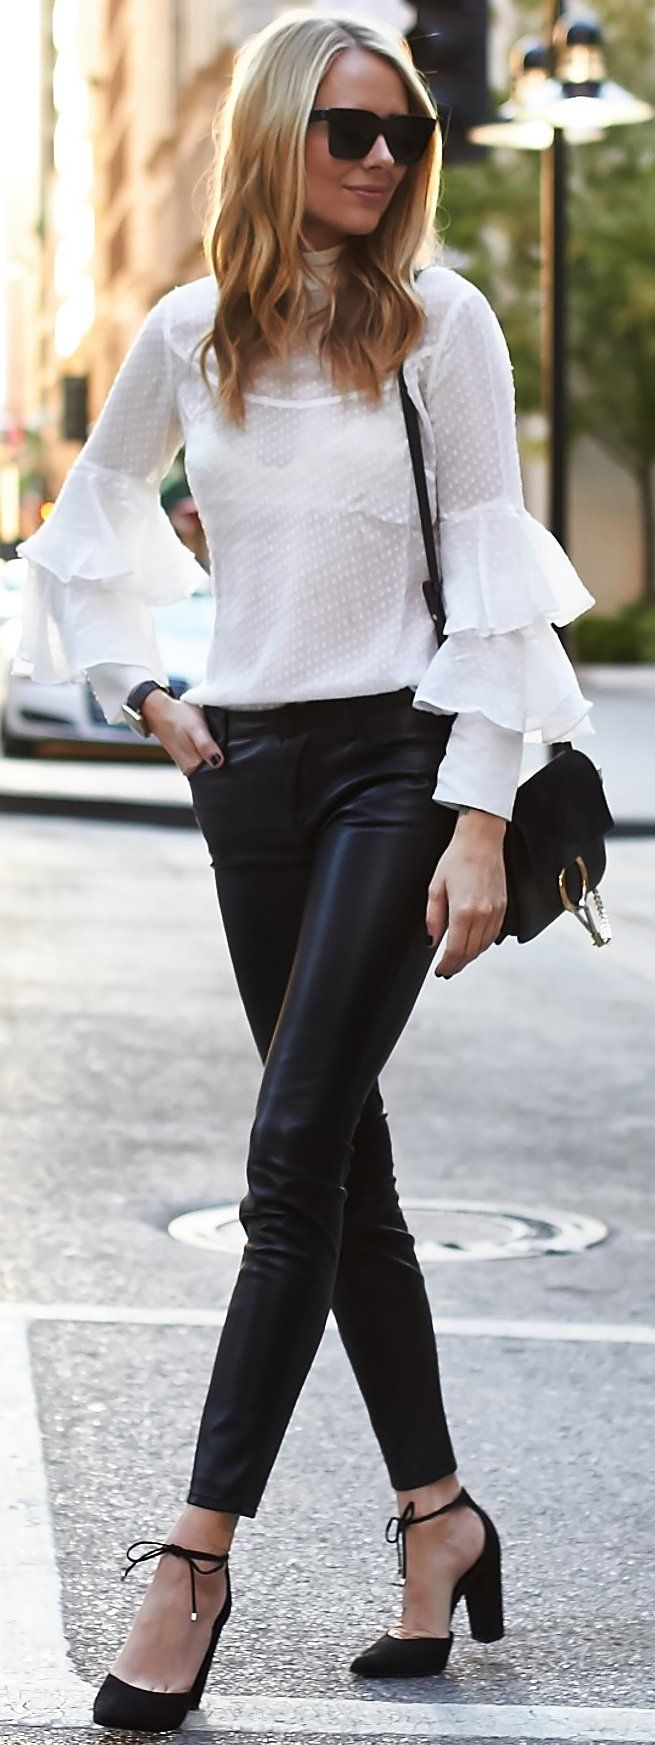 #fall #street #trends | Ruffles + Leather + Black And White